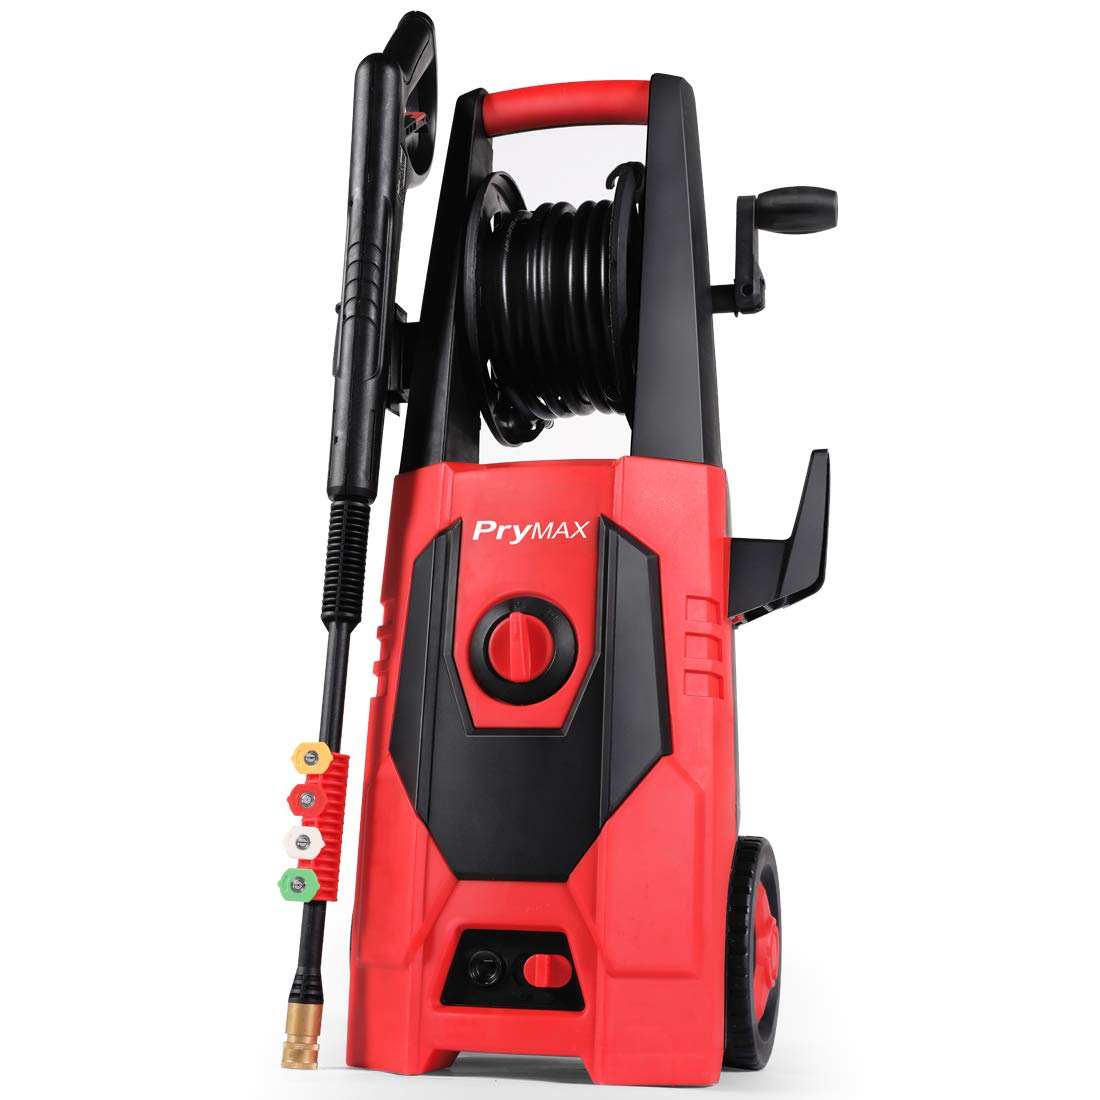 PRYMAX Pressure Washer 3000 PSI 1.85 GPM Car Electric Power Washer with Hose Reel and Interchangeable Nozzles, Red